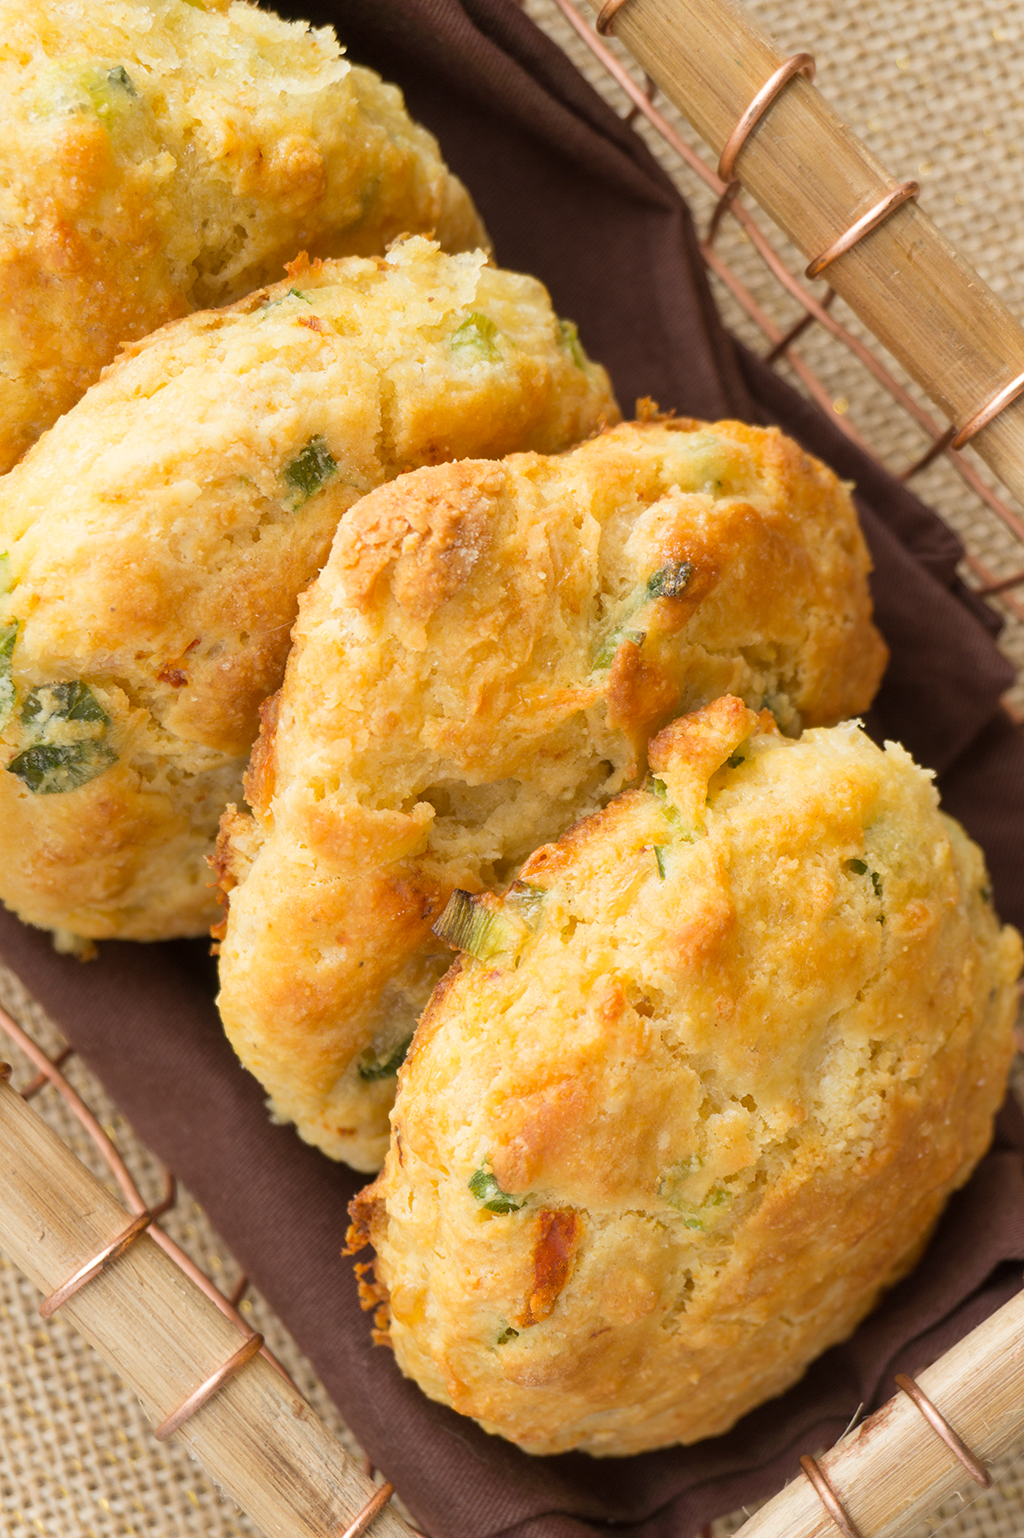 Cheddar chipotle buttermilk biscuit with cornmeal